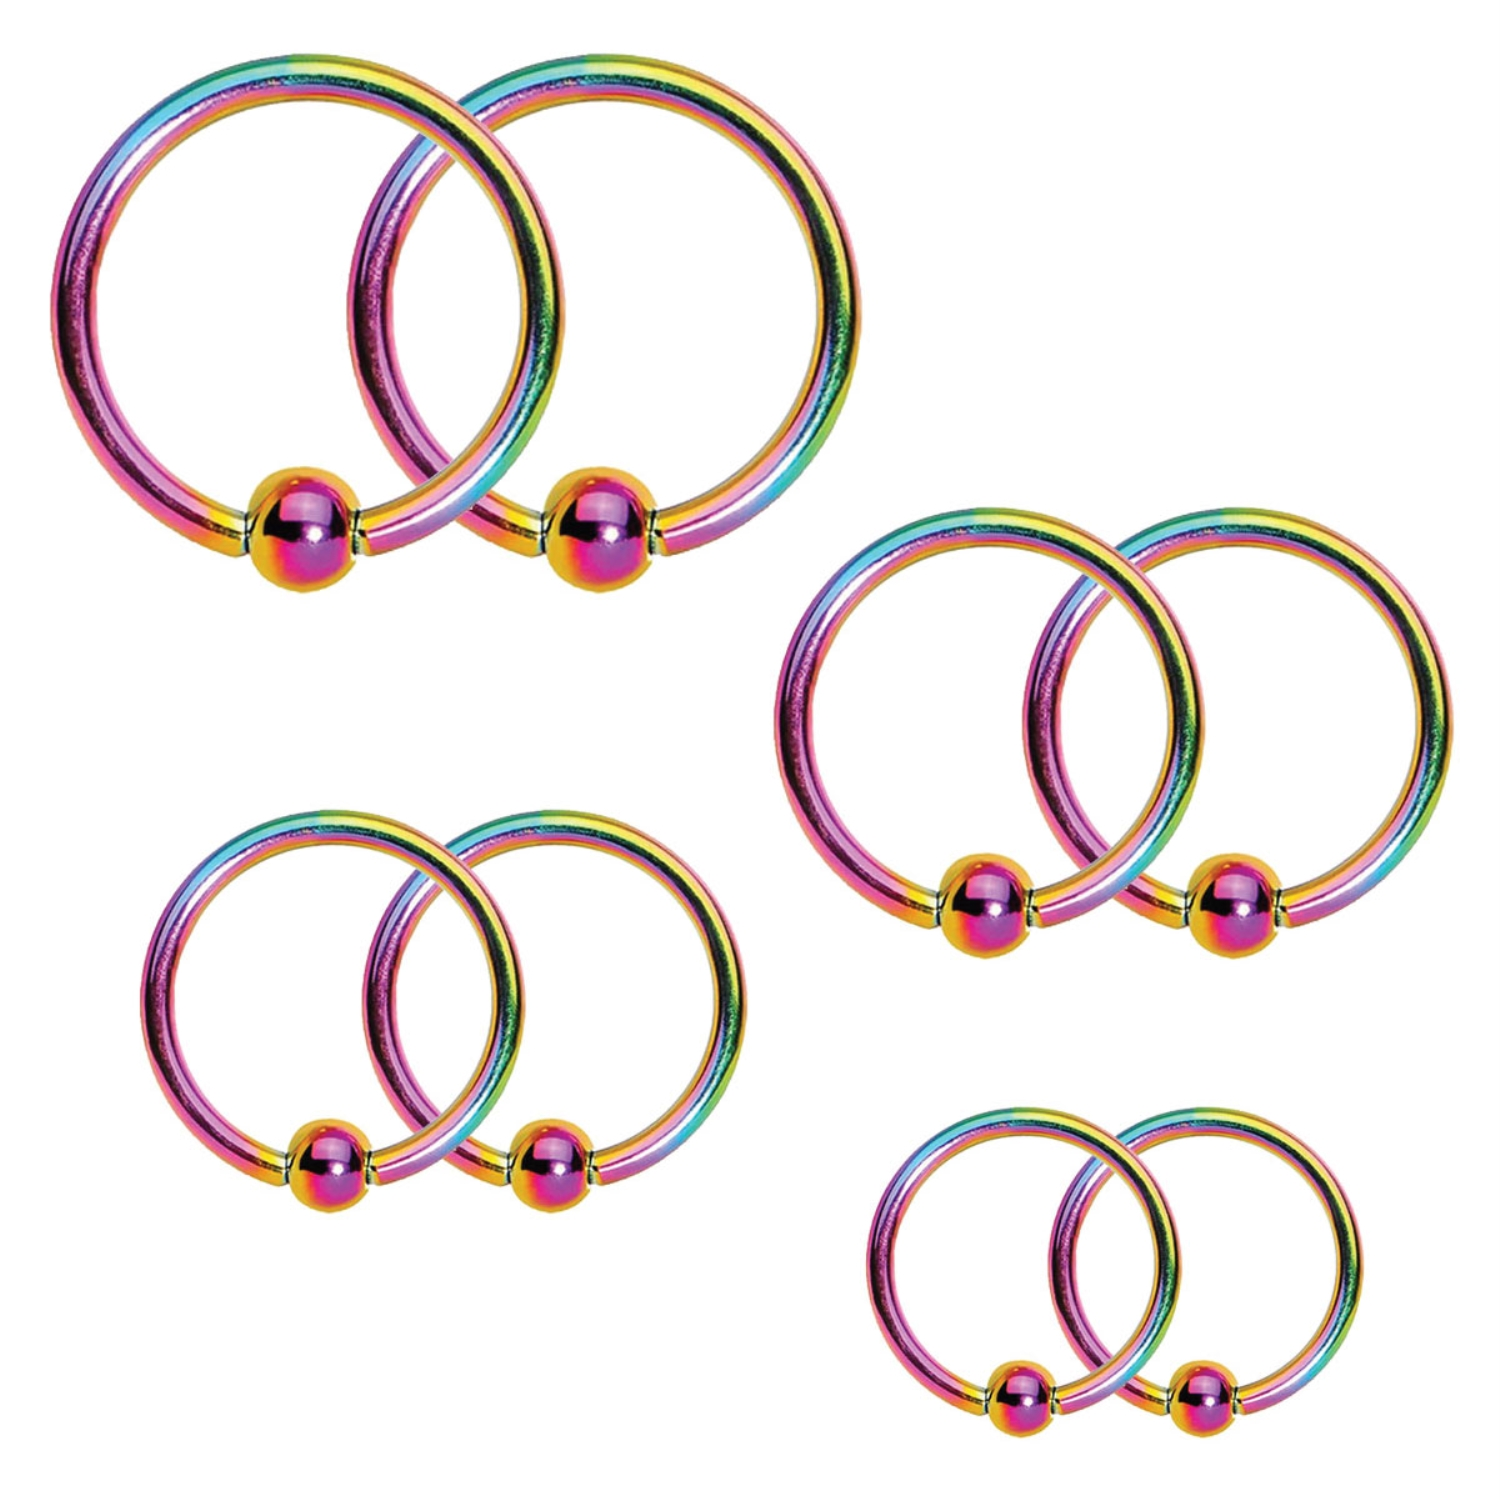 BodyJ4You Captive Bead Ring Piercing Set 14G Rainbow Surgical Steel Nose Tragus Nipple Hoop Ring 8PC